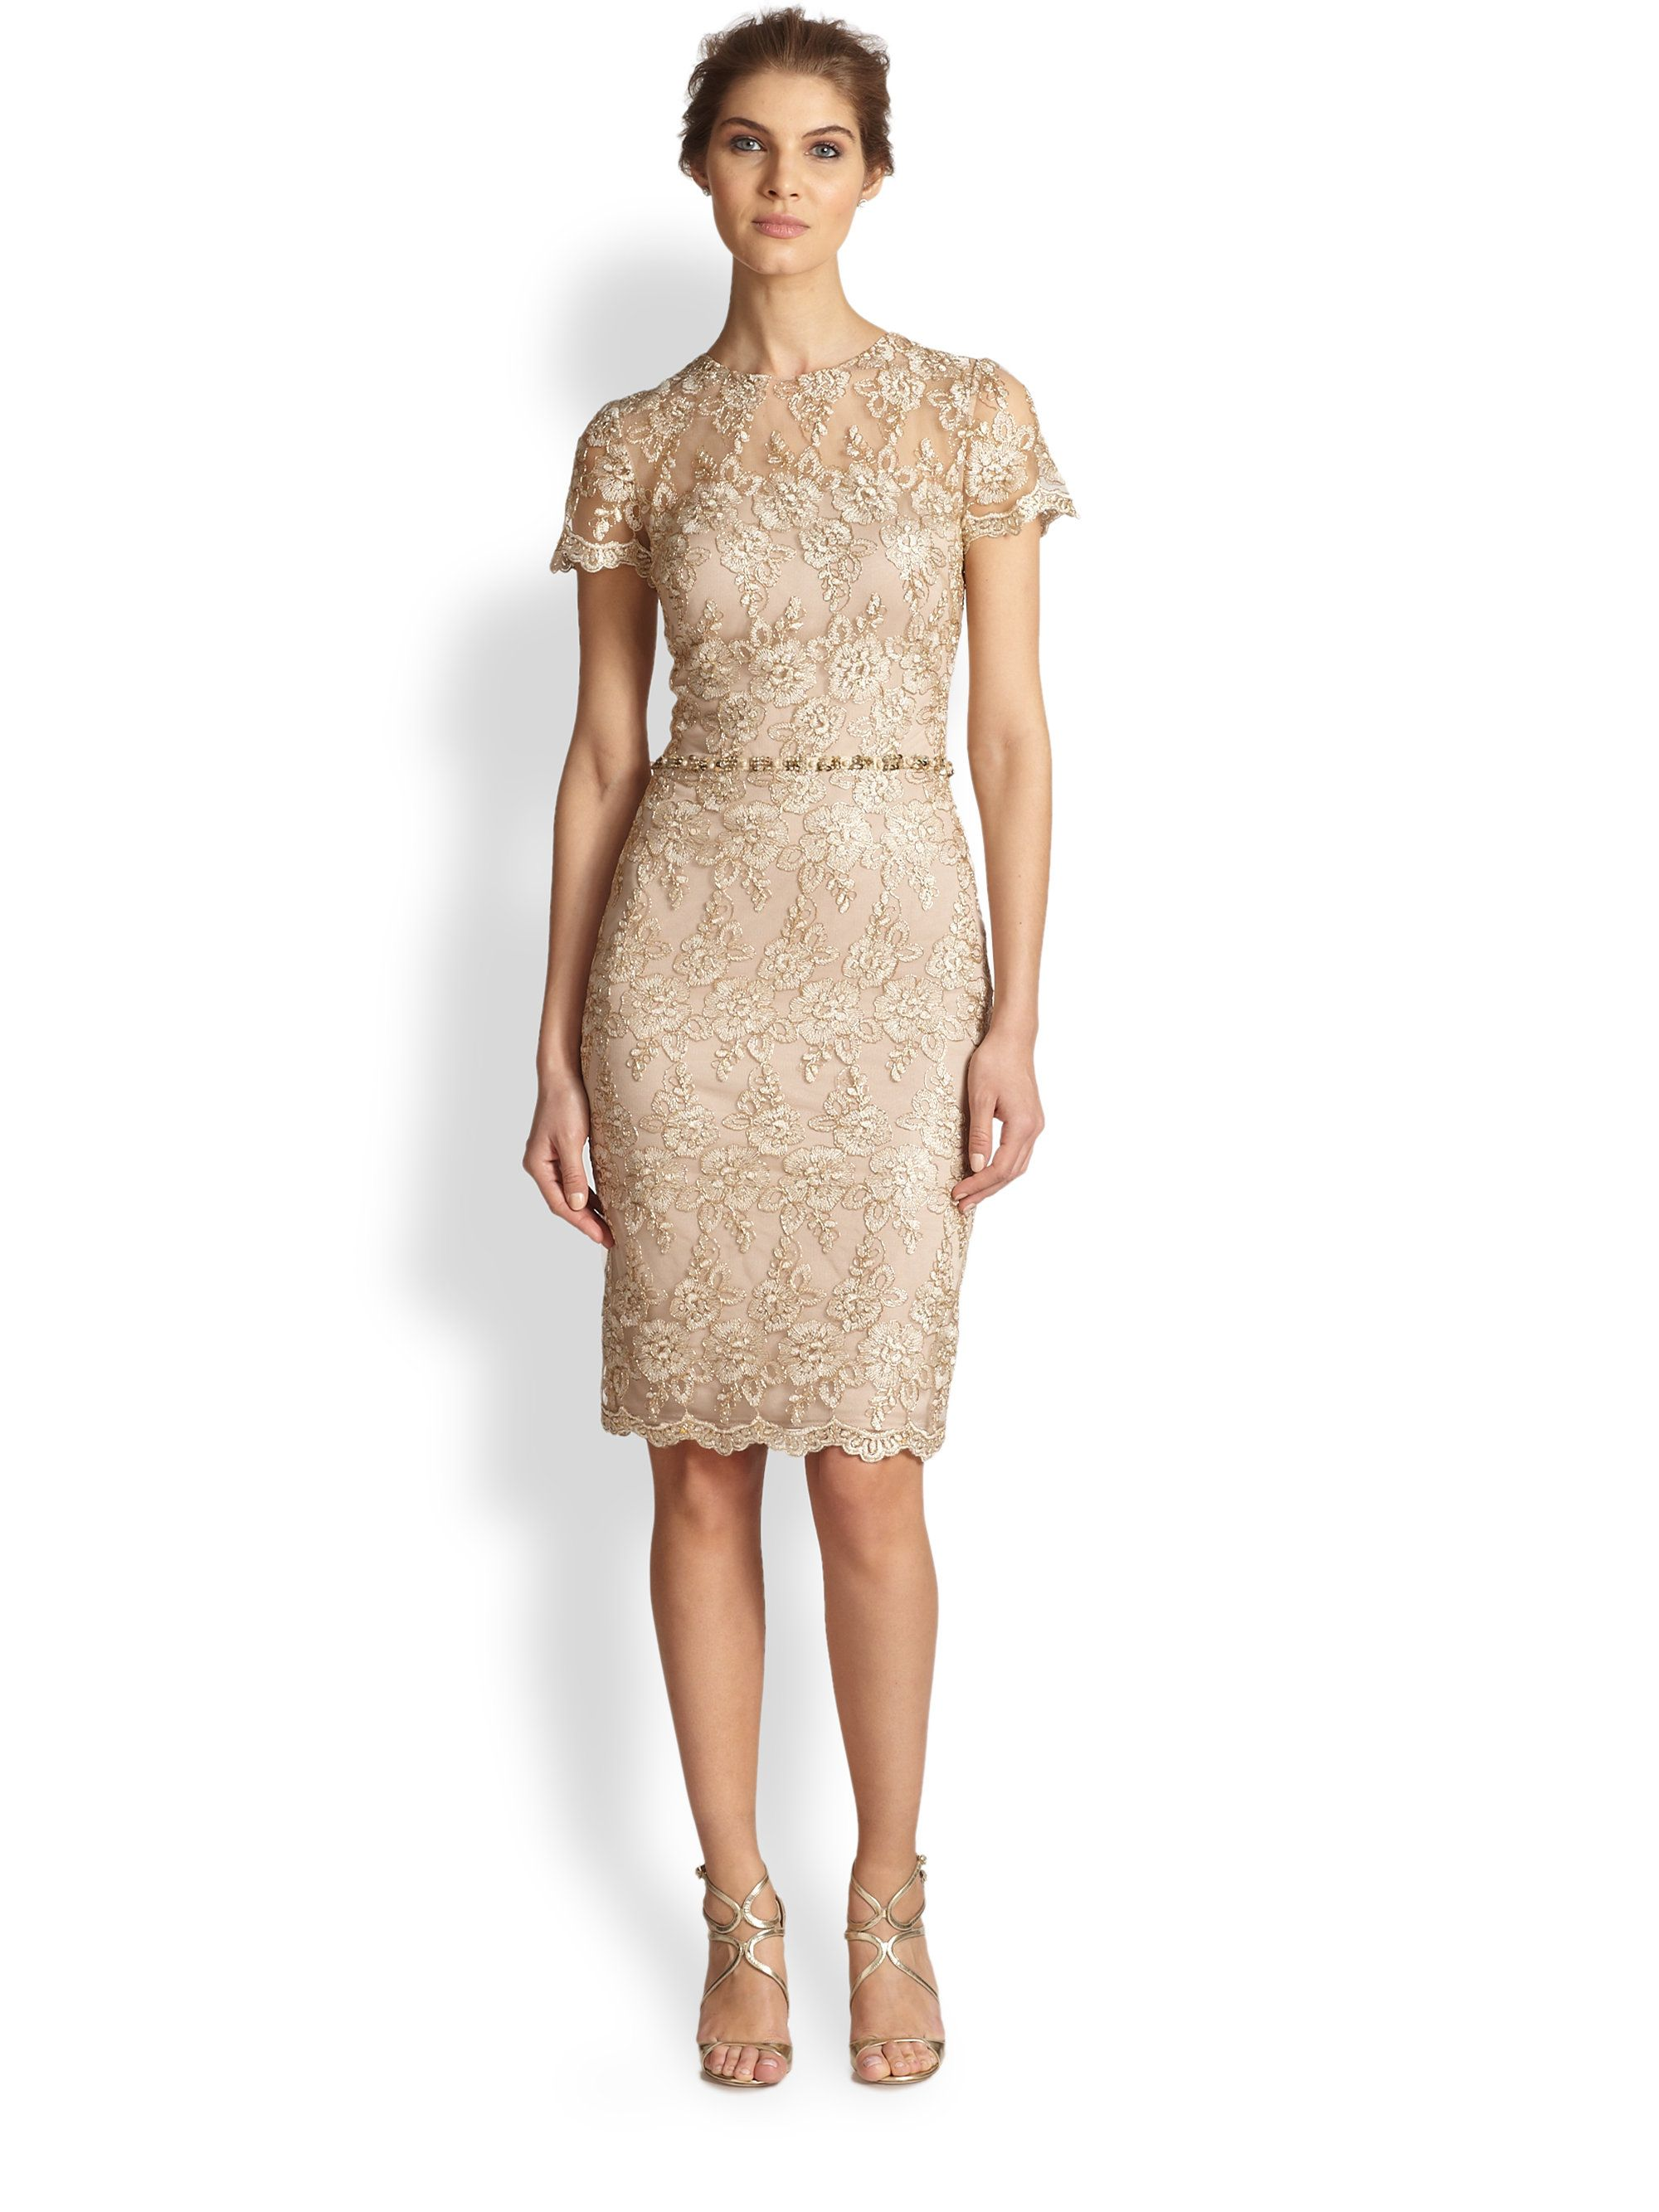 5984d4ad570 David Meister Shortsleeve Lace Dress in Beige (TAUPE)